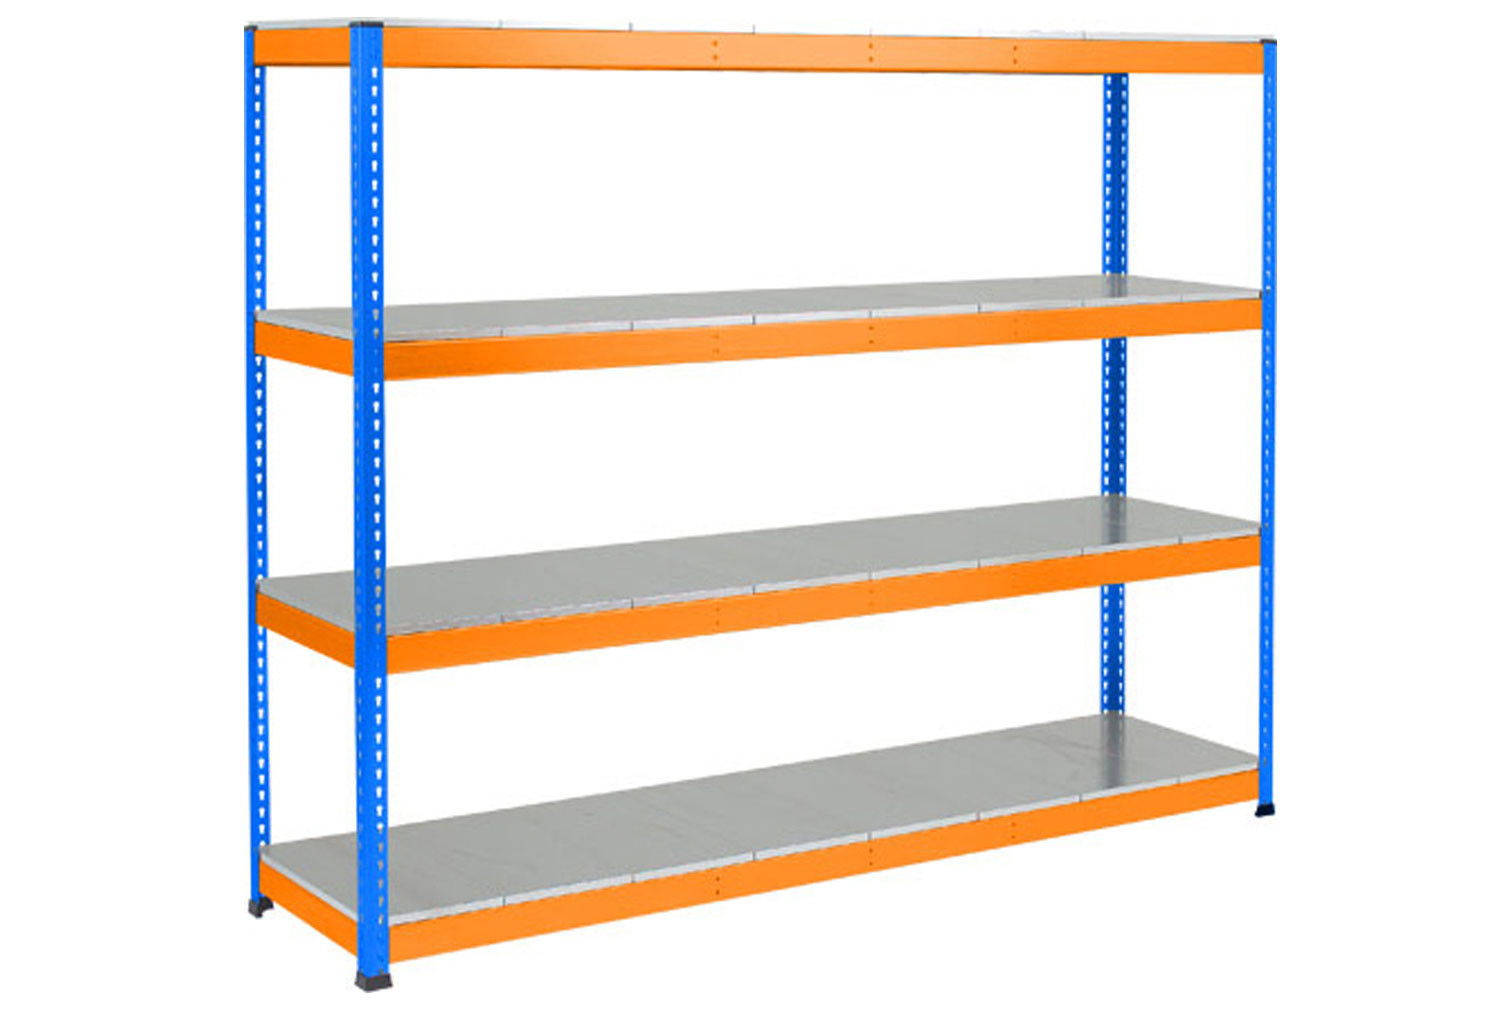 Rapid 1 Heavy Duty Shelving With 4 Galvanized Shelves 2134wx2440h (Blue/Orange)